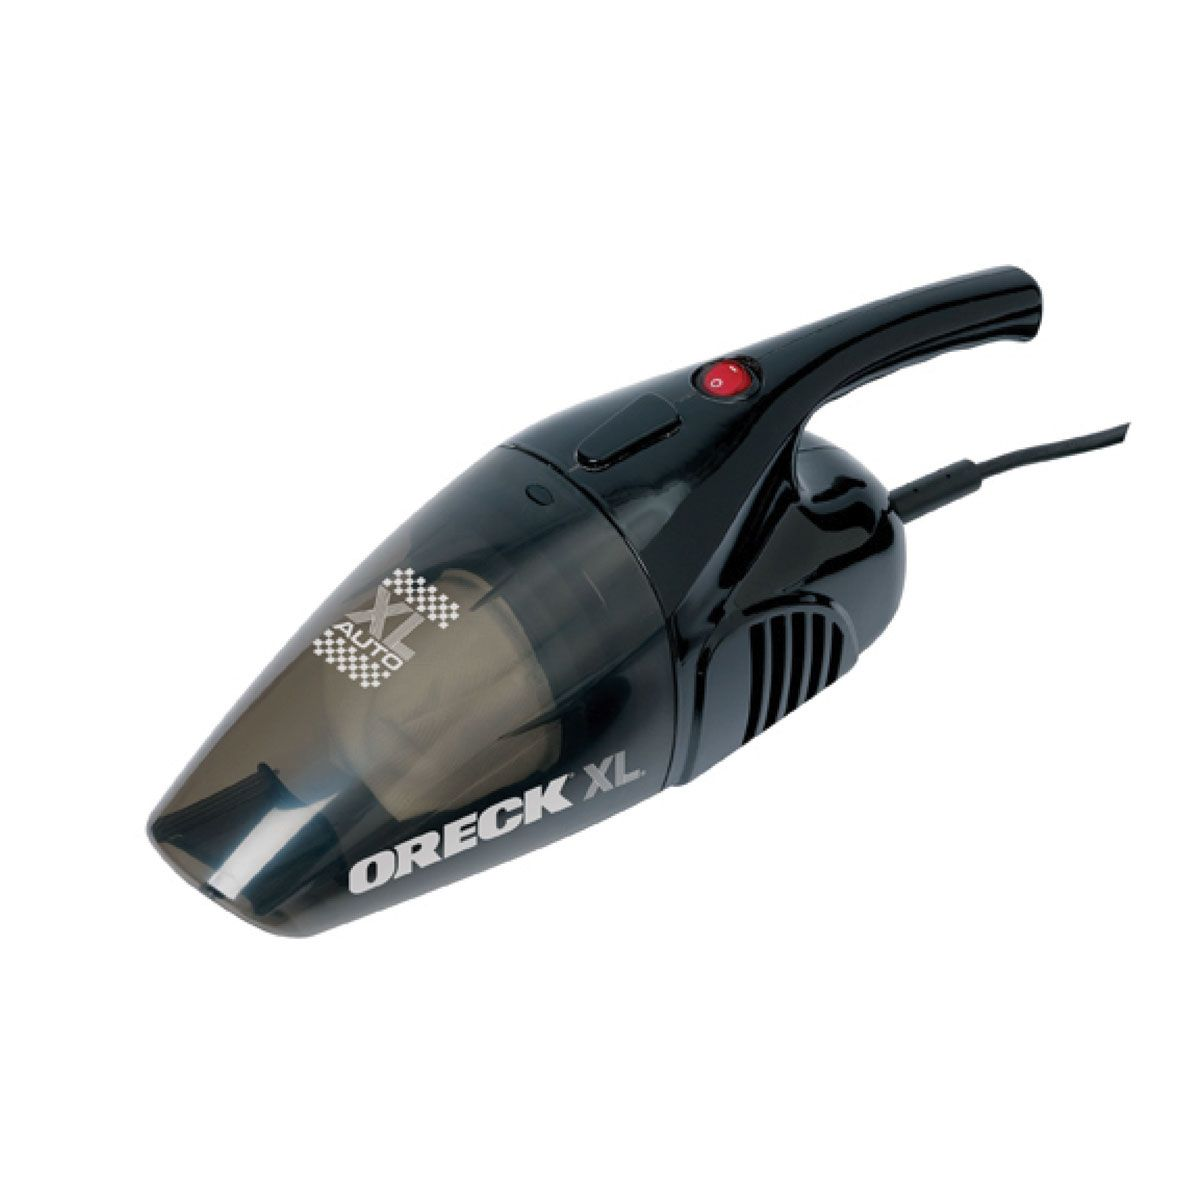 Handheld Car Vac Upholstery And Carpet Cleaning Car Vacuum Oreck Car Vac